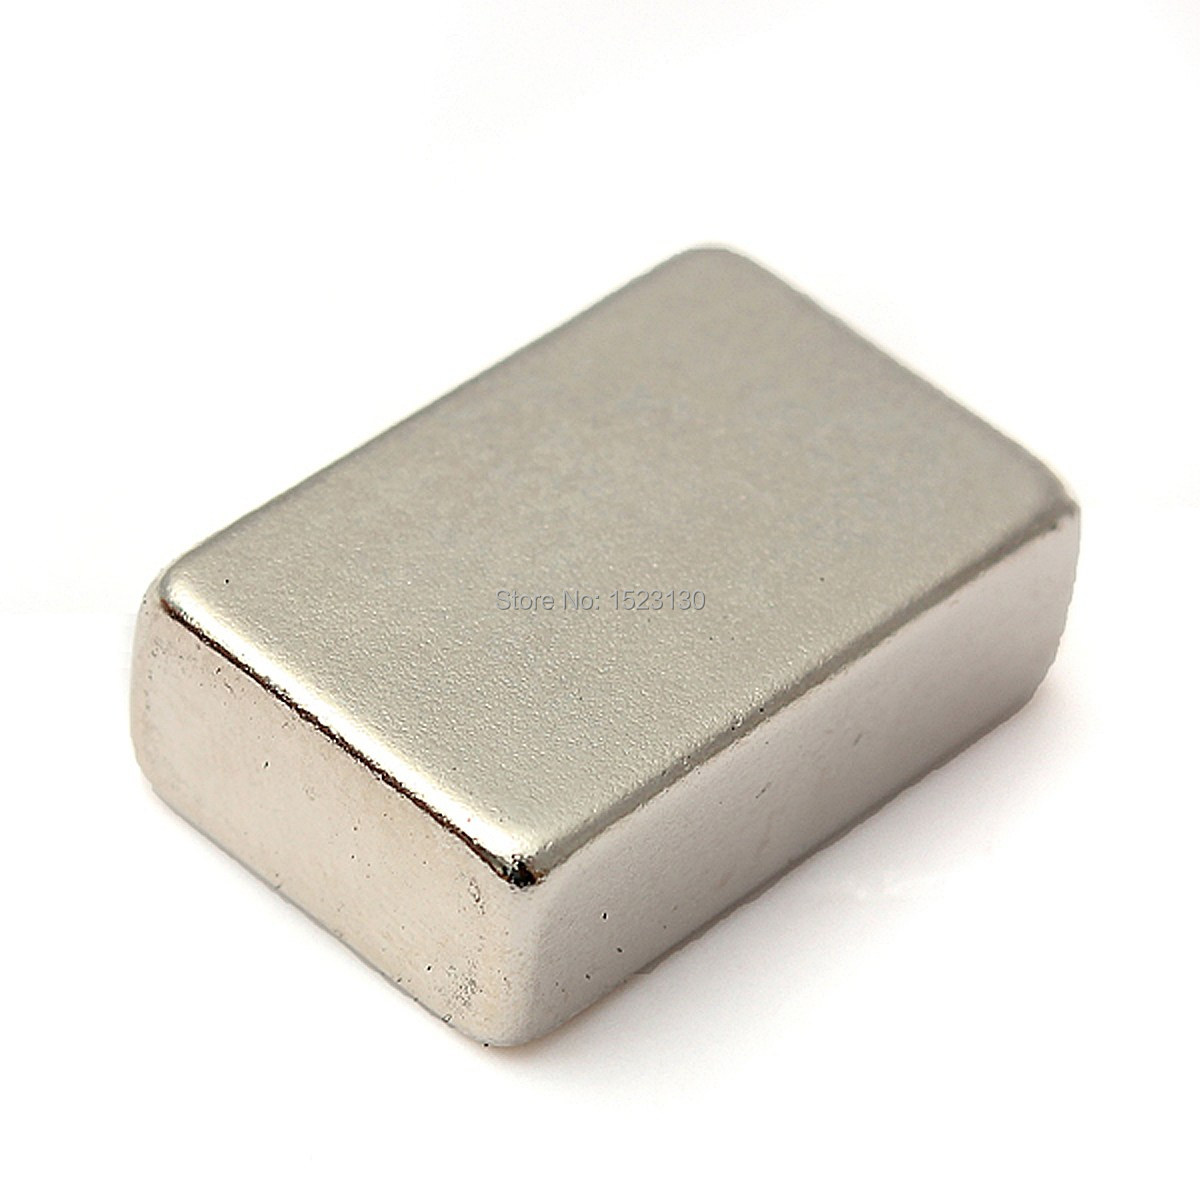 Гаджет  Super Powerful Strong Rare Earth Block NdFeB Magnet Neodymium N50 Magnets 30mm x 20mm x 10mm N50 None Строительство и Недвижимость